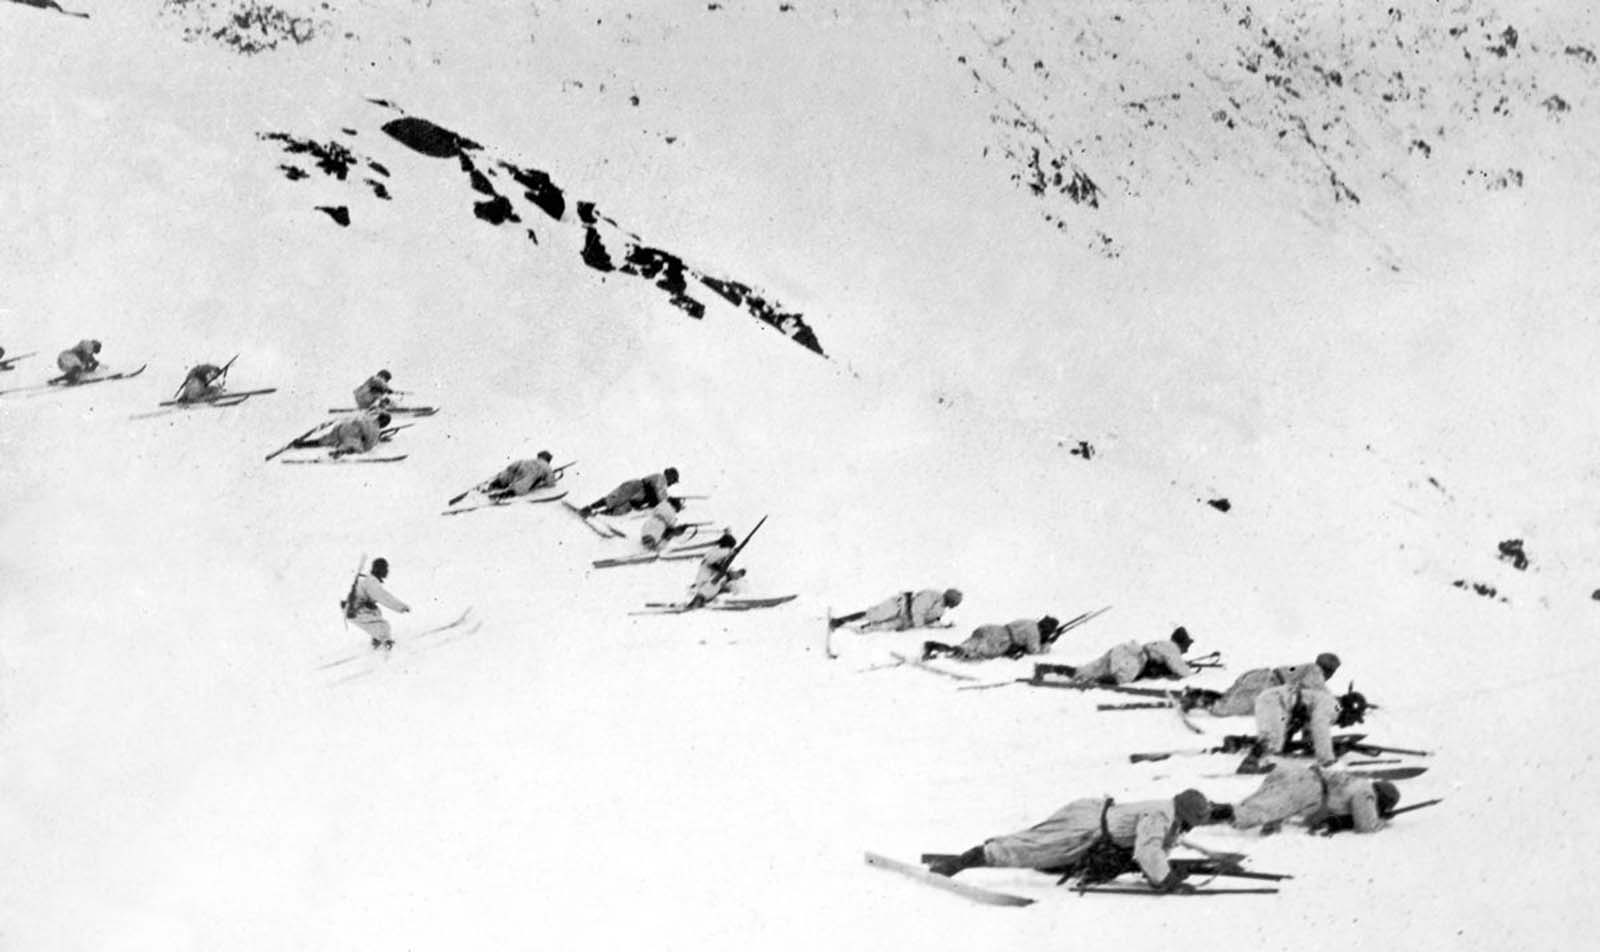 Italian troops on skis advance on Austrian forces in the Julian Alps. 1916.